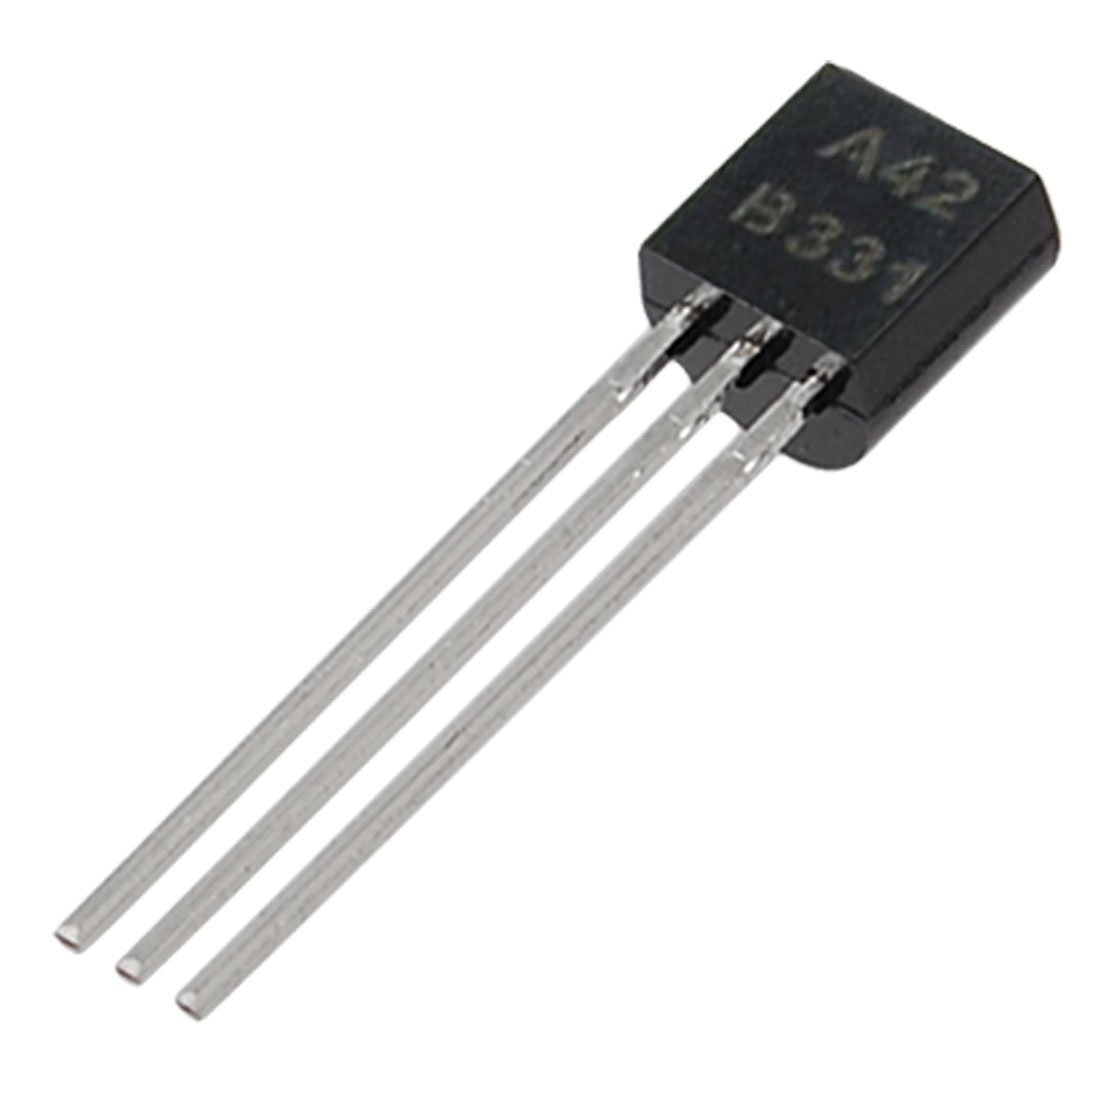 A42 TO-92 Three Pins General Purpose NPN Transistors 50 Pcs Sourcingmap a11102000ux0367